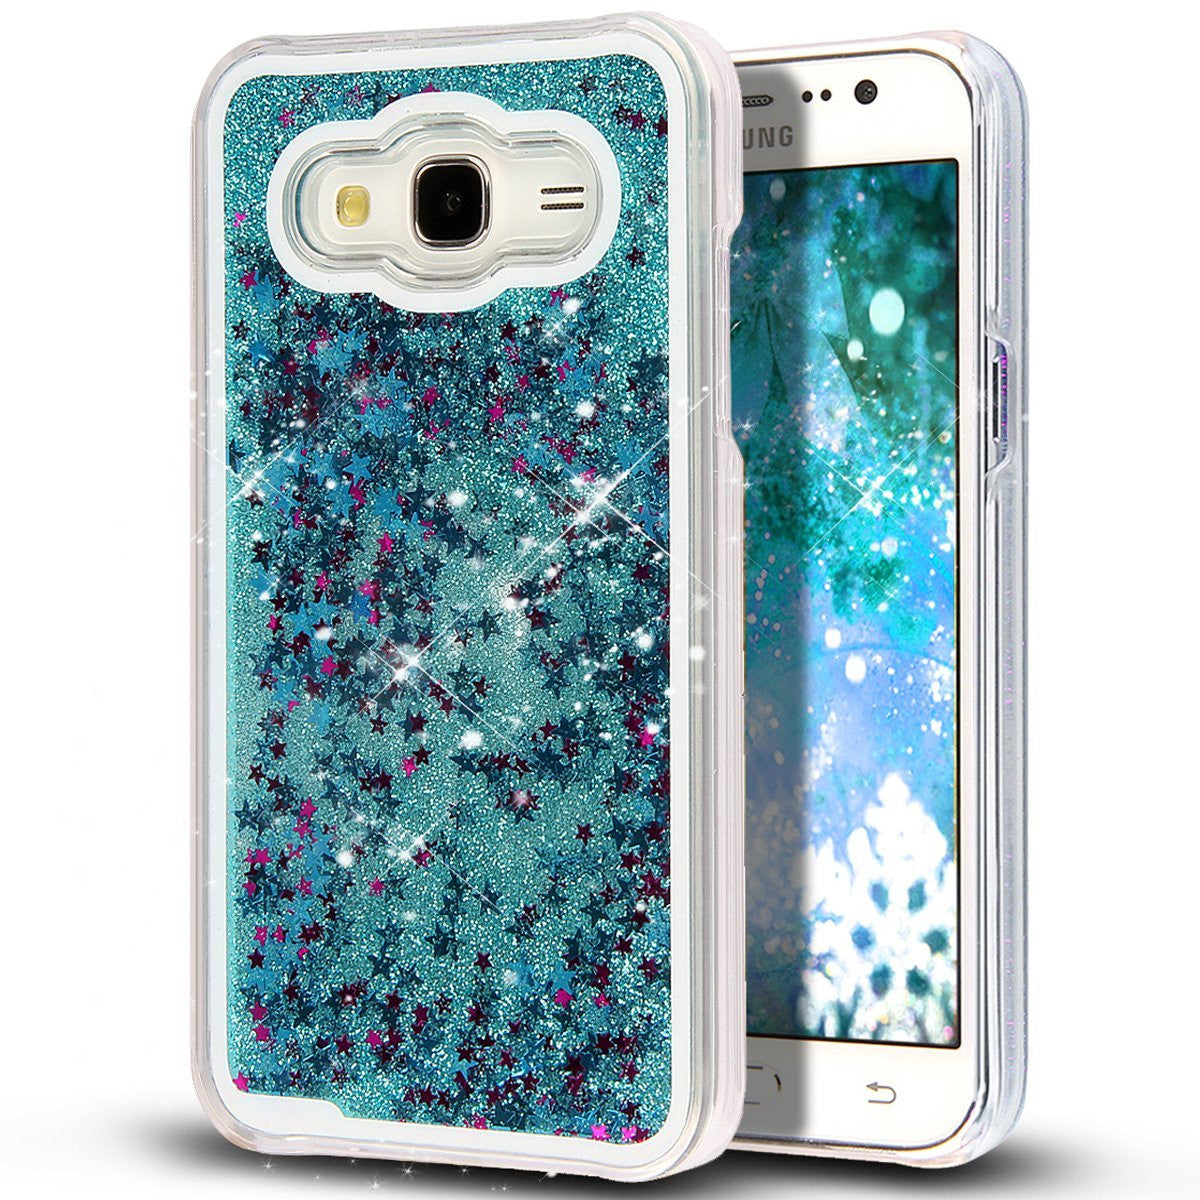 Galaxy J5 Case Liquid Glitter Case for Samsung Galaxy